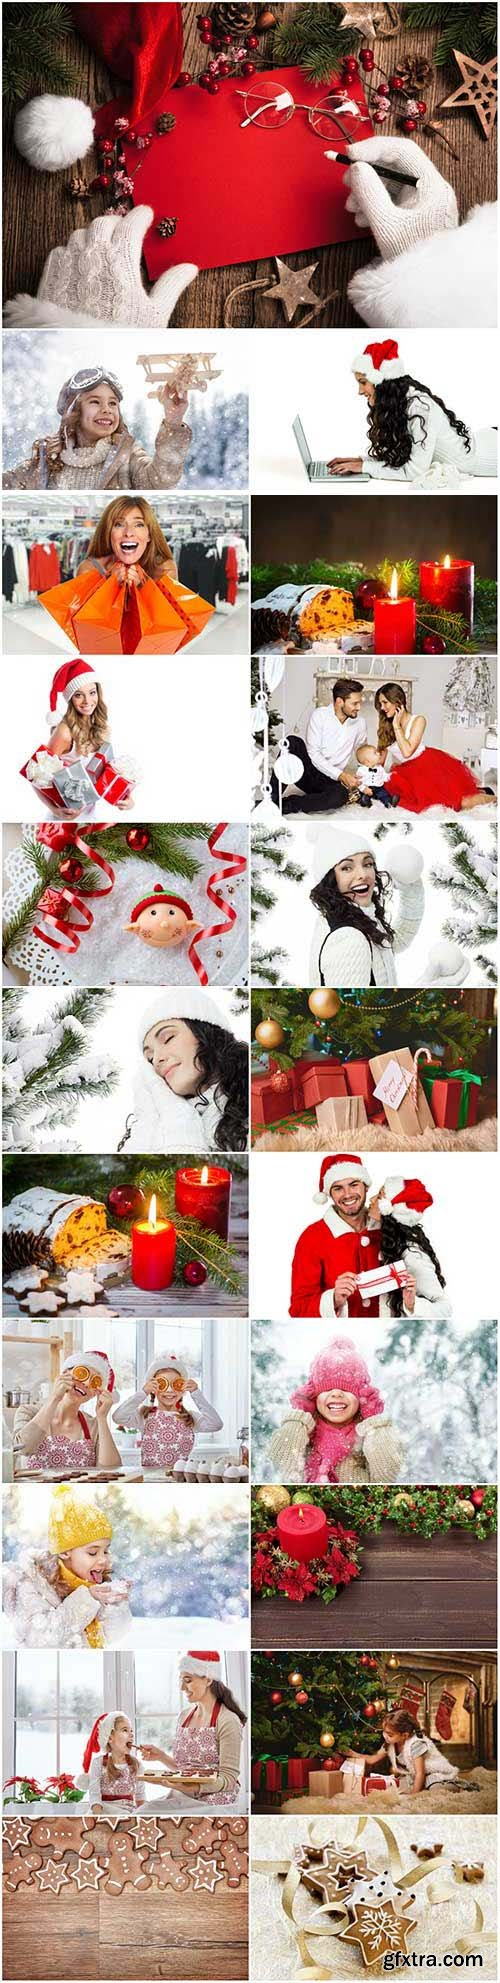 New Year and Christmas stock photos 93